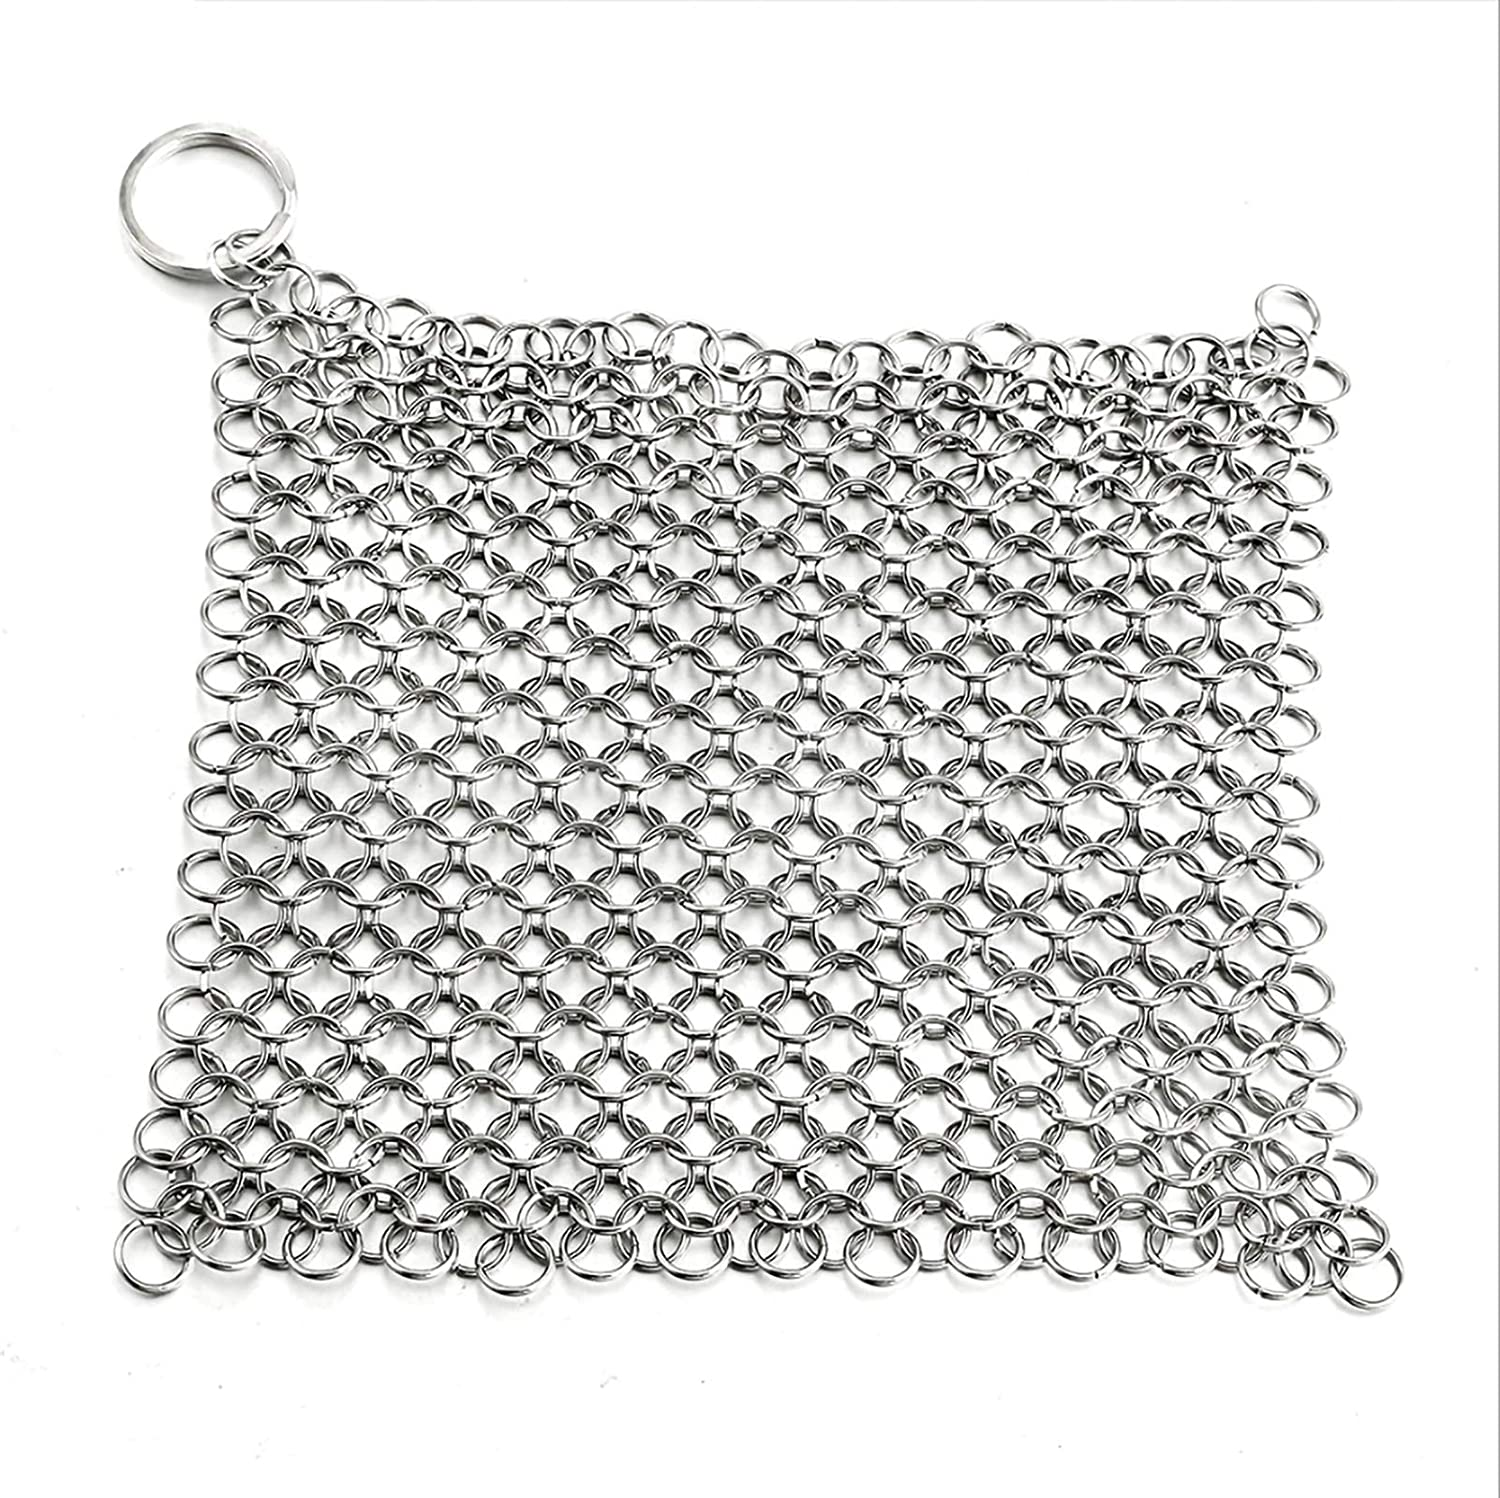 Dishwashing Net 316 Stainless Steel, Kitchen Hanging Square And Non-manual Brush Chain, Suitable For Washing Dishes, Tableware, Tableware, Kettles (Color : Silver, Size : 4 inch)